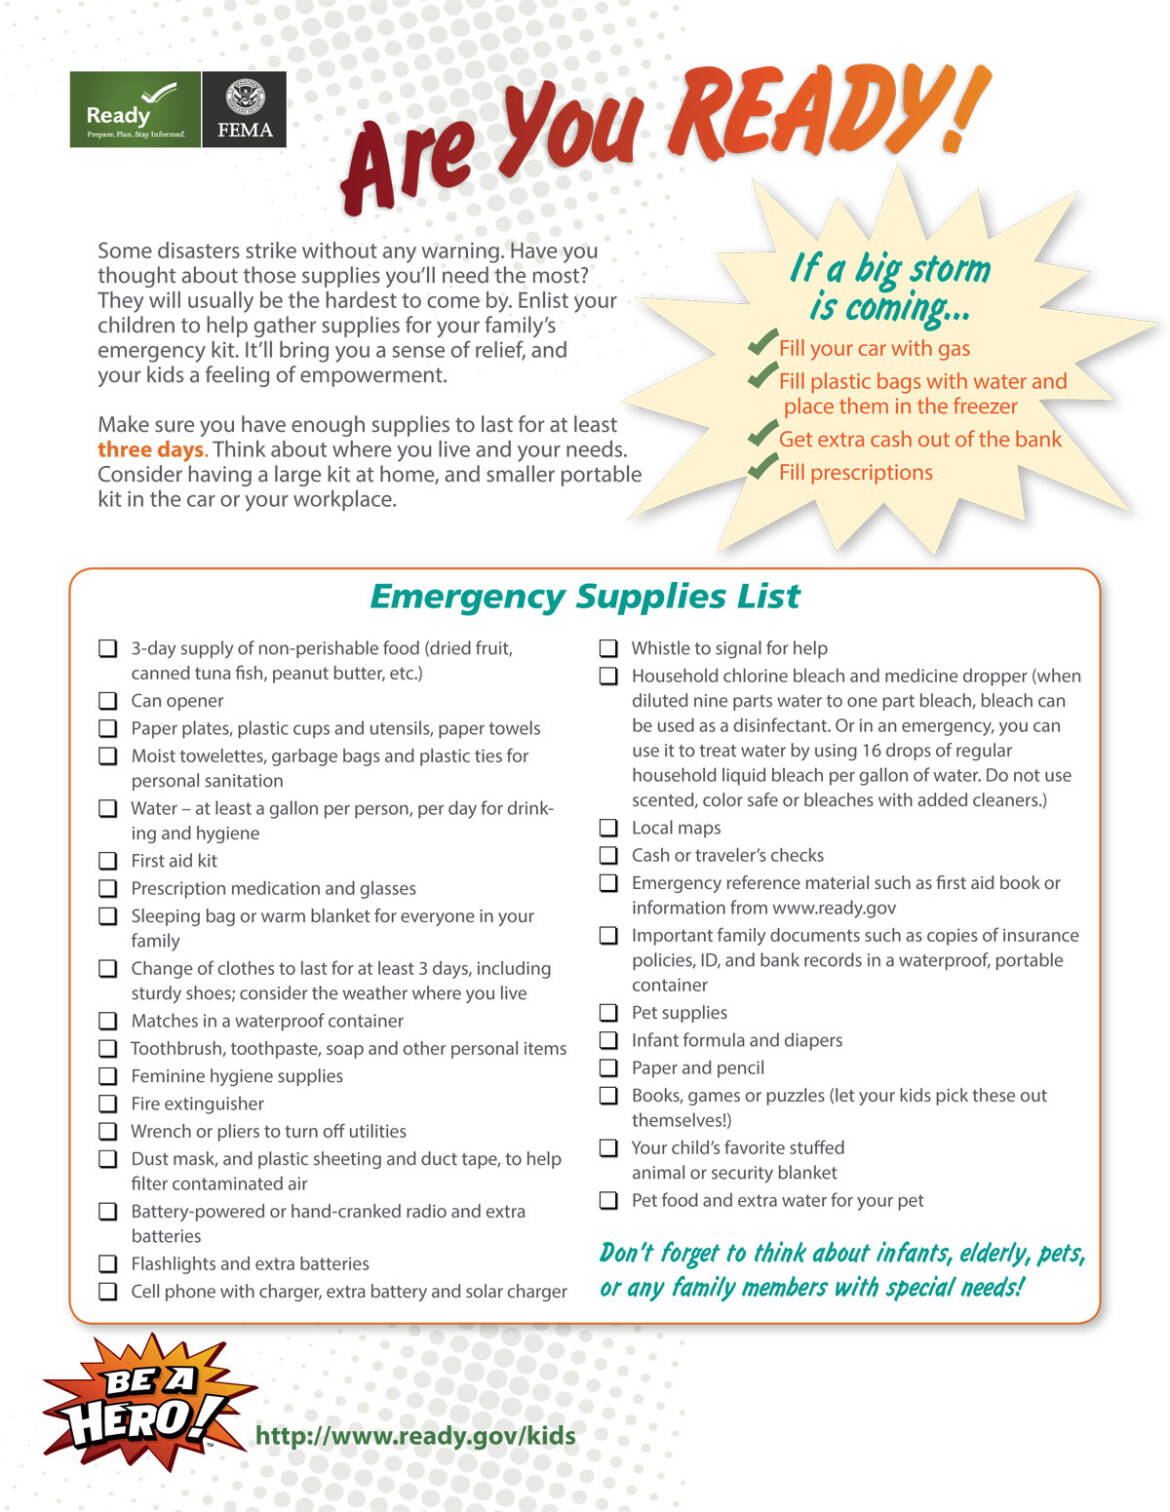 FEMA_checklist_parent_508_071513.jpg